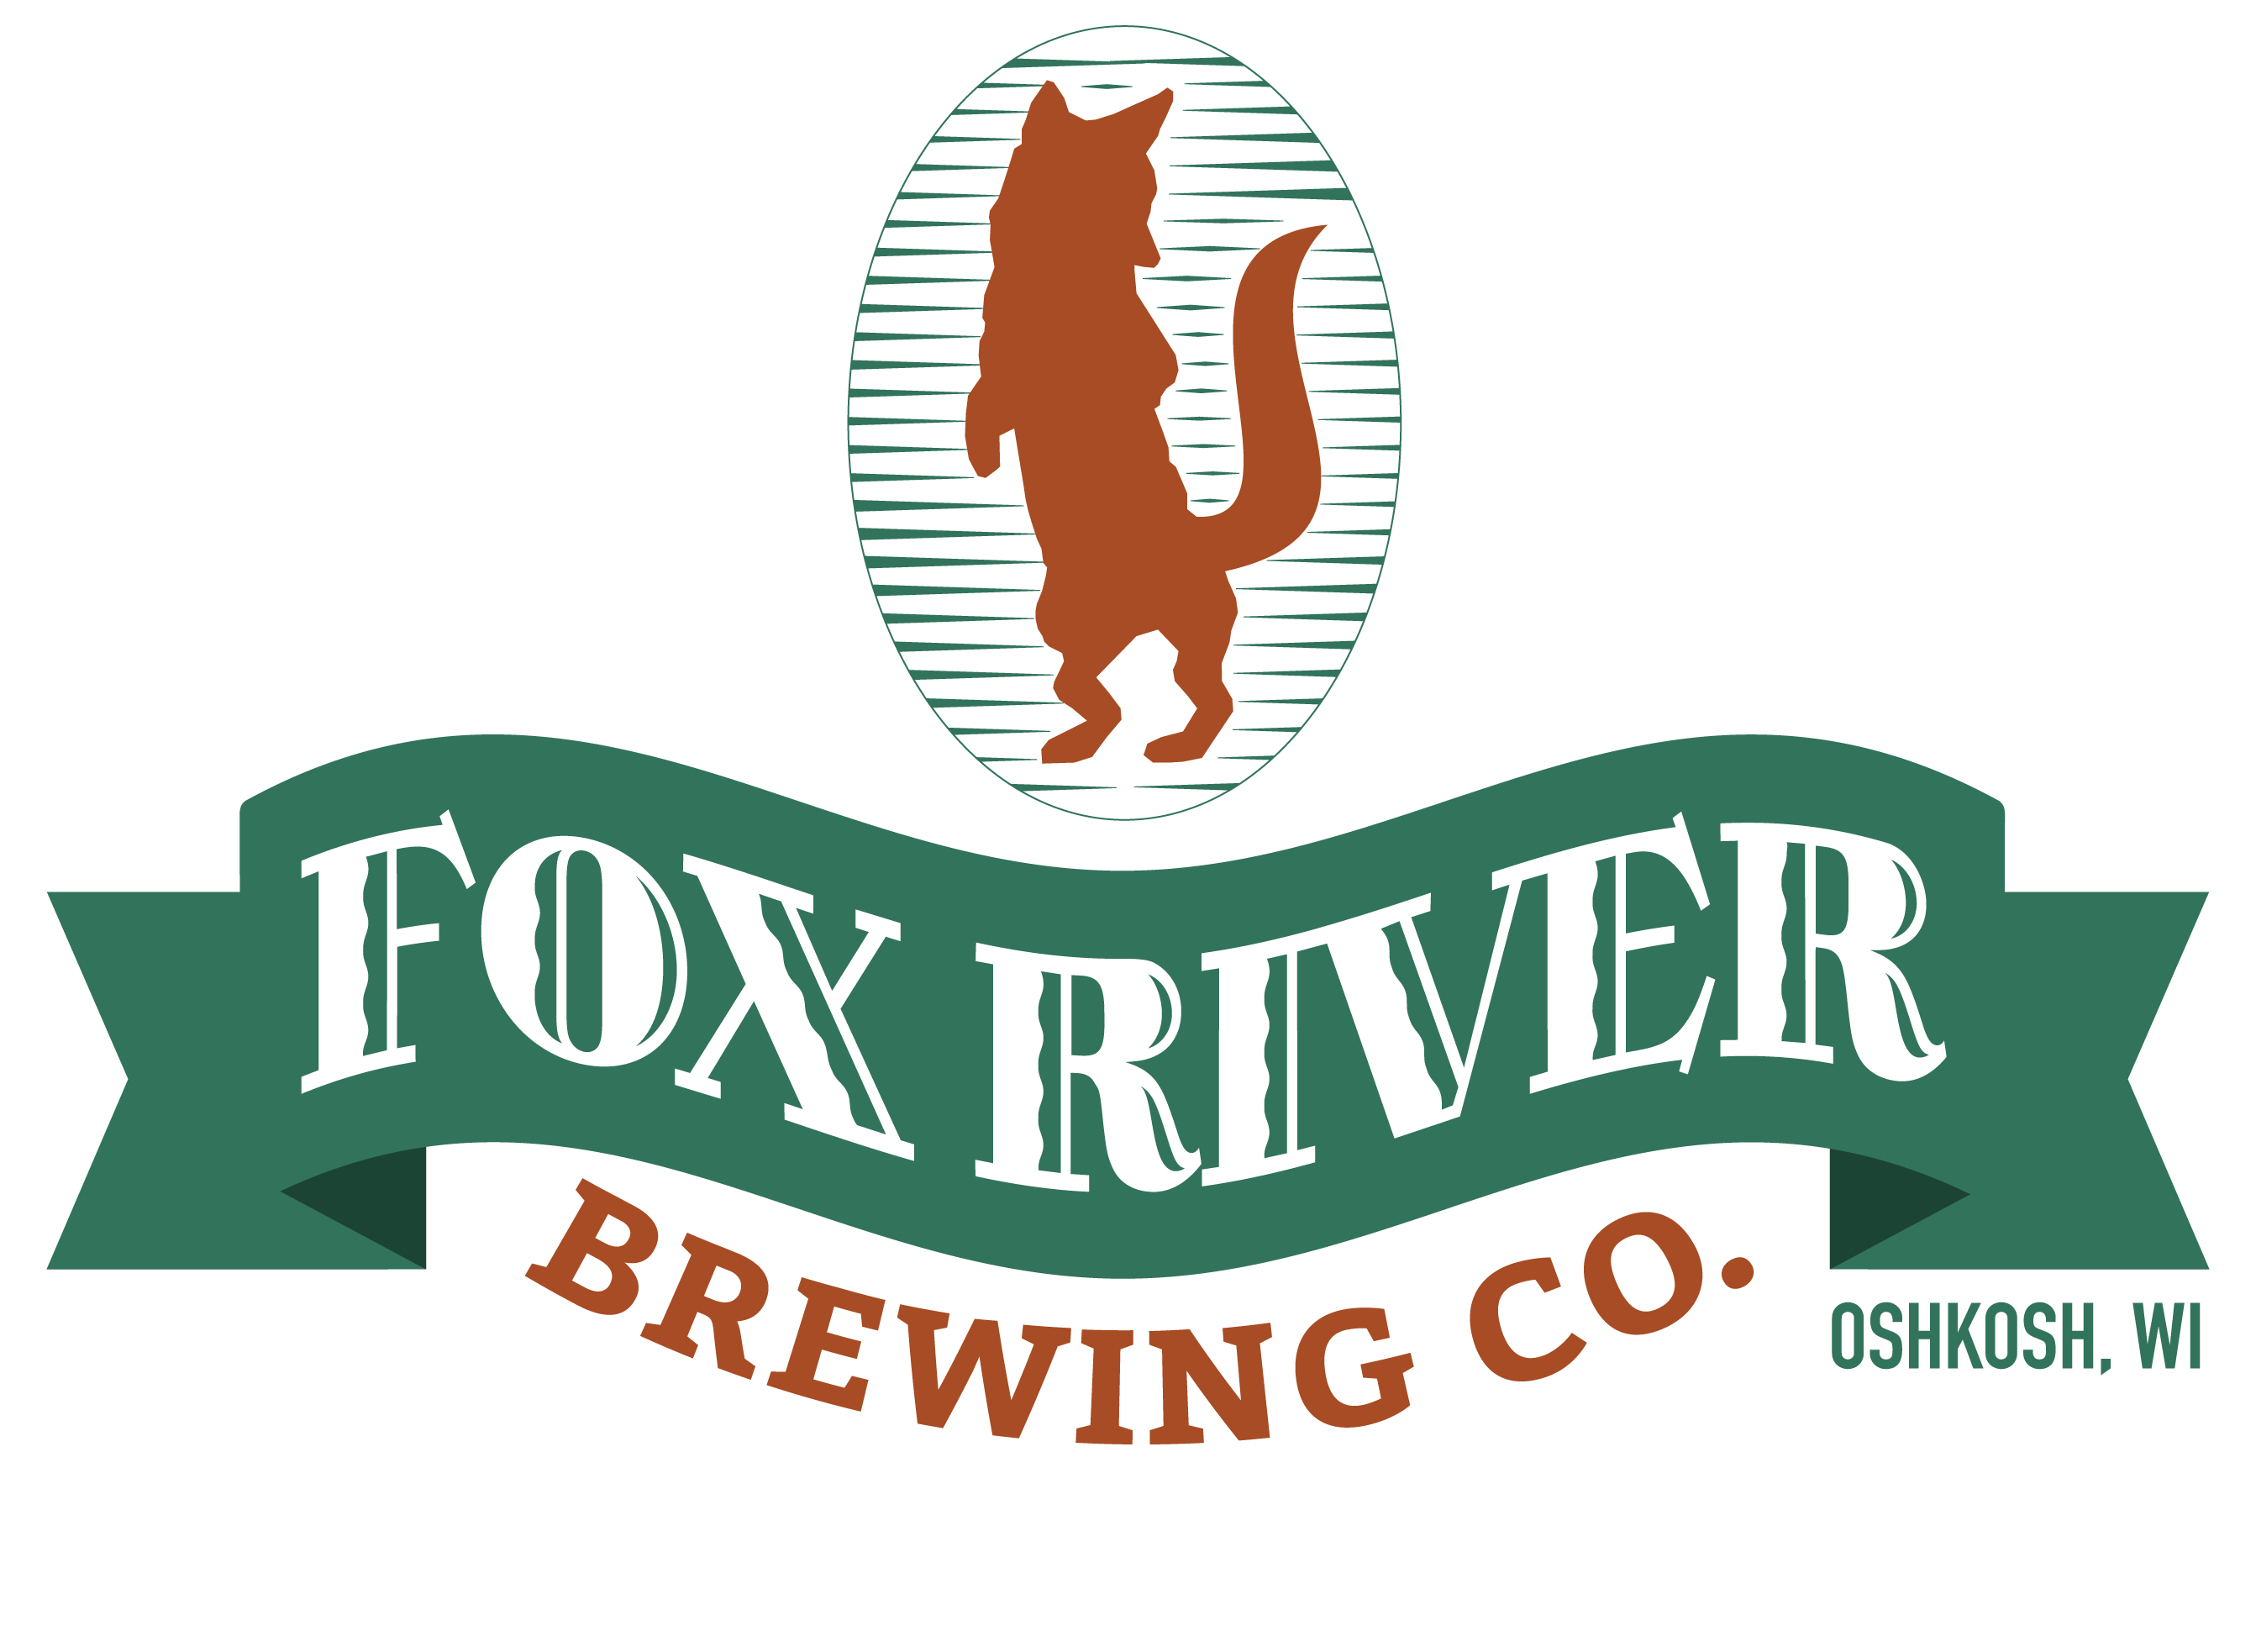 Fox River Brewery Waterfront Restaurant and Brewery - Oskosh